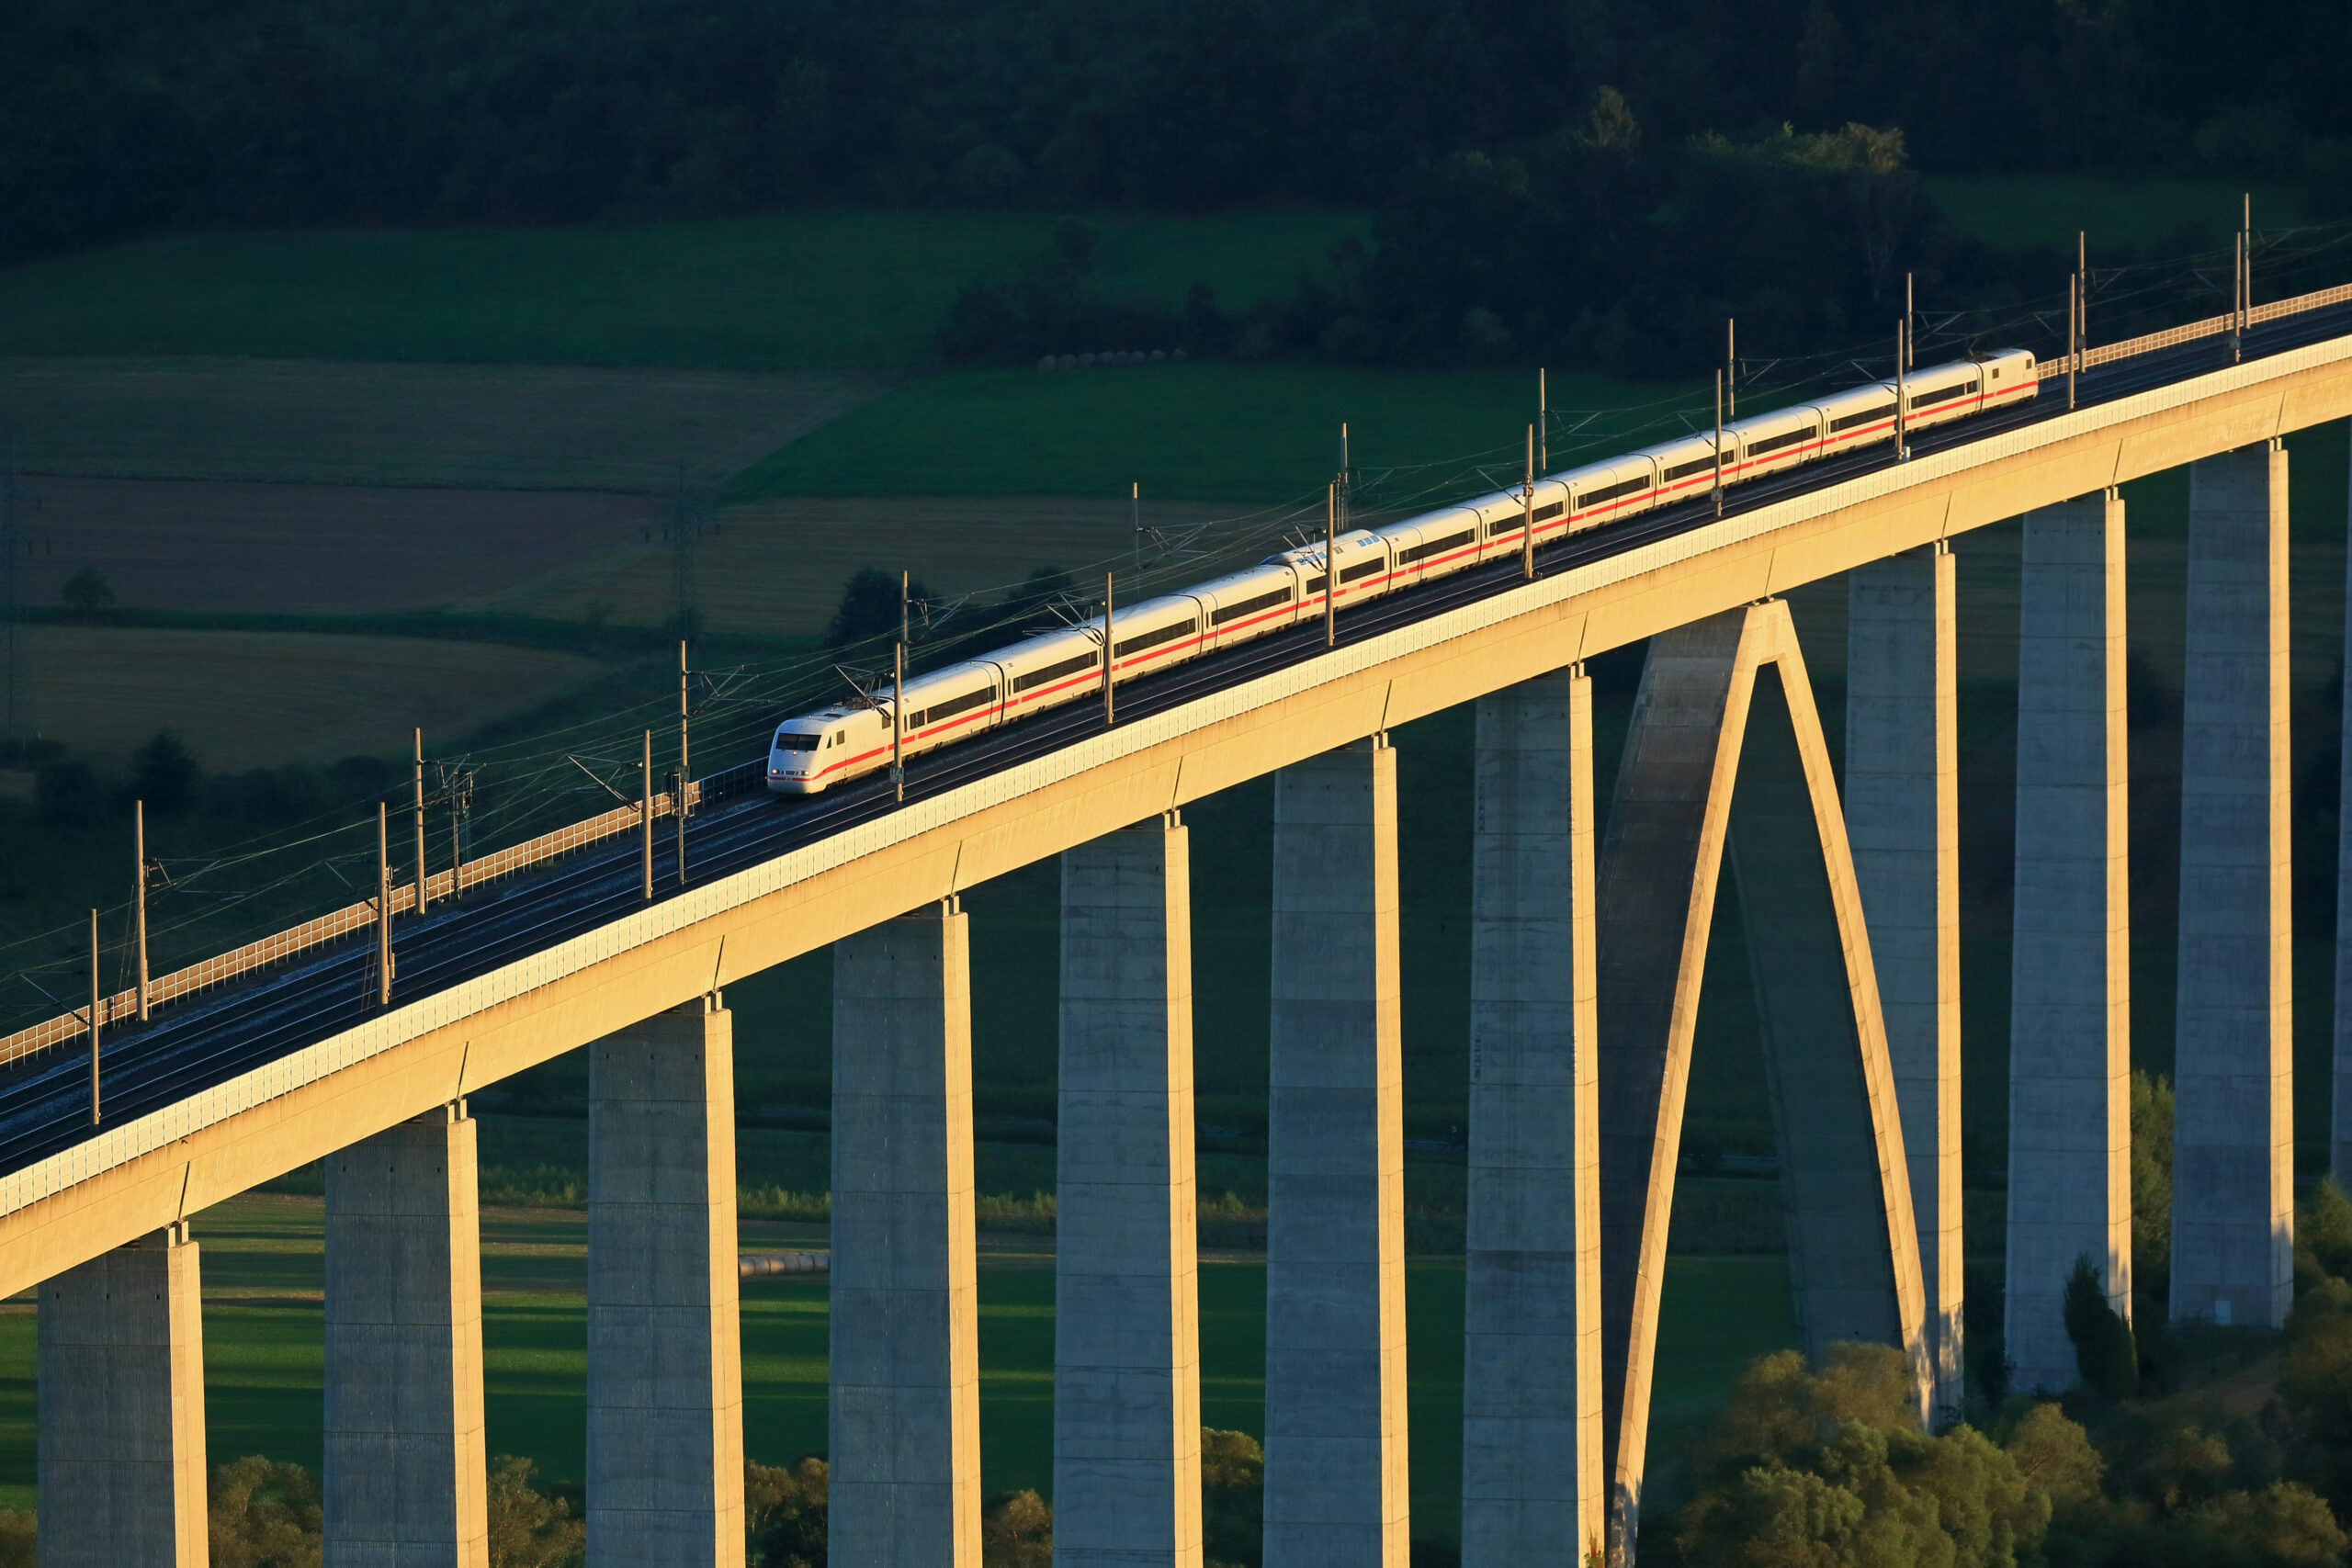 ICE 1 train on the high-speed route between Hanover and Würzburg